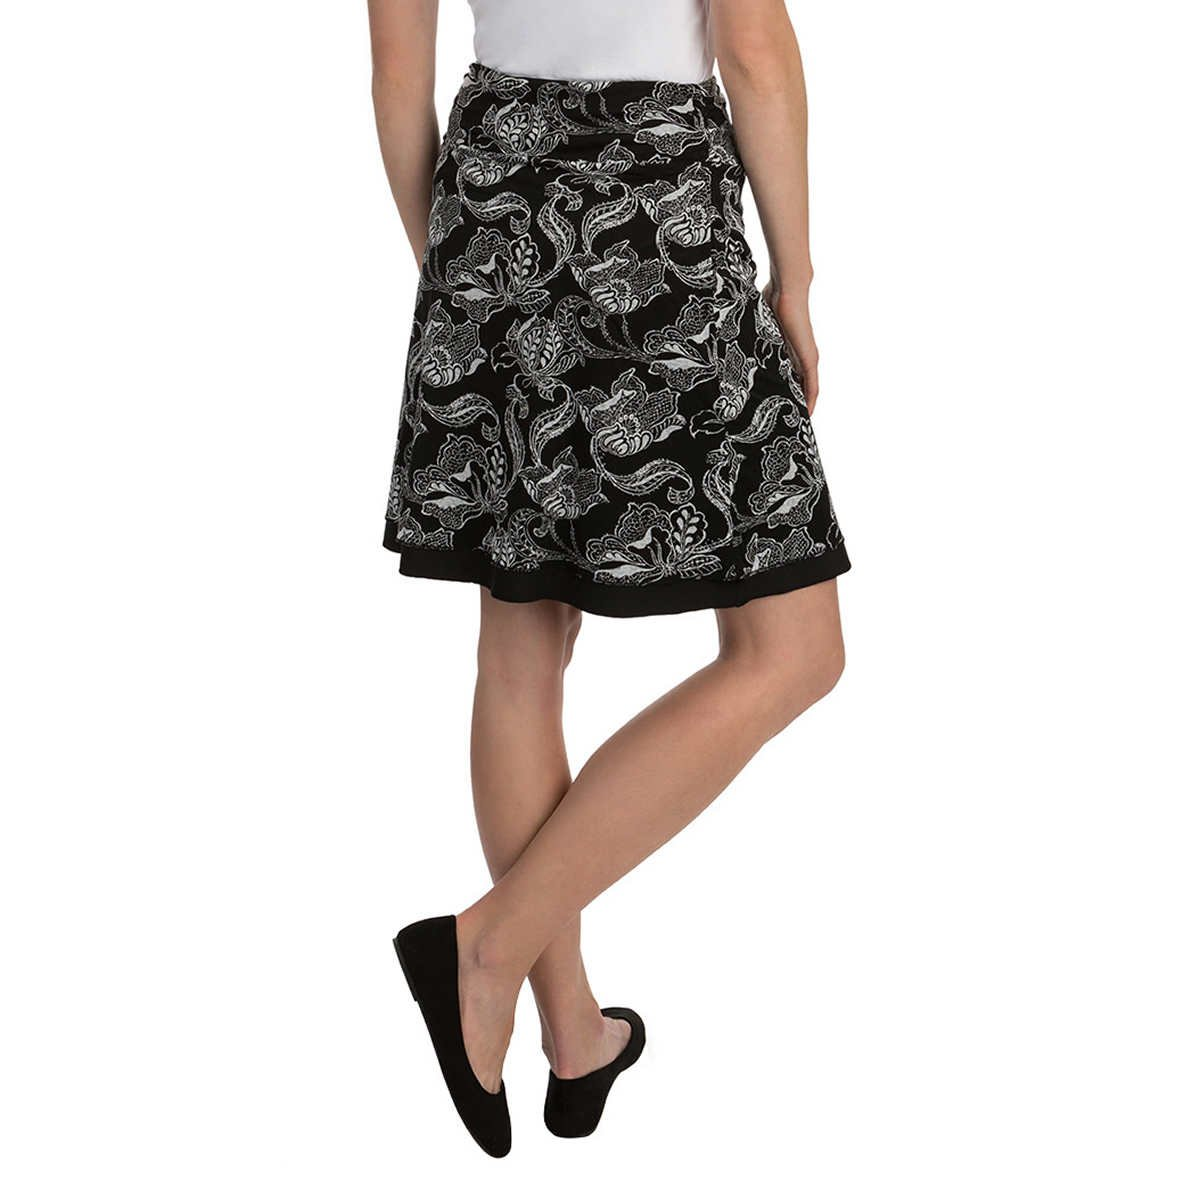 Colorado Clothing Tranquility Women's Reversible Skirt, Black Pattern, Large by Colorado Clothing (Image #3)